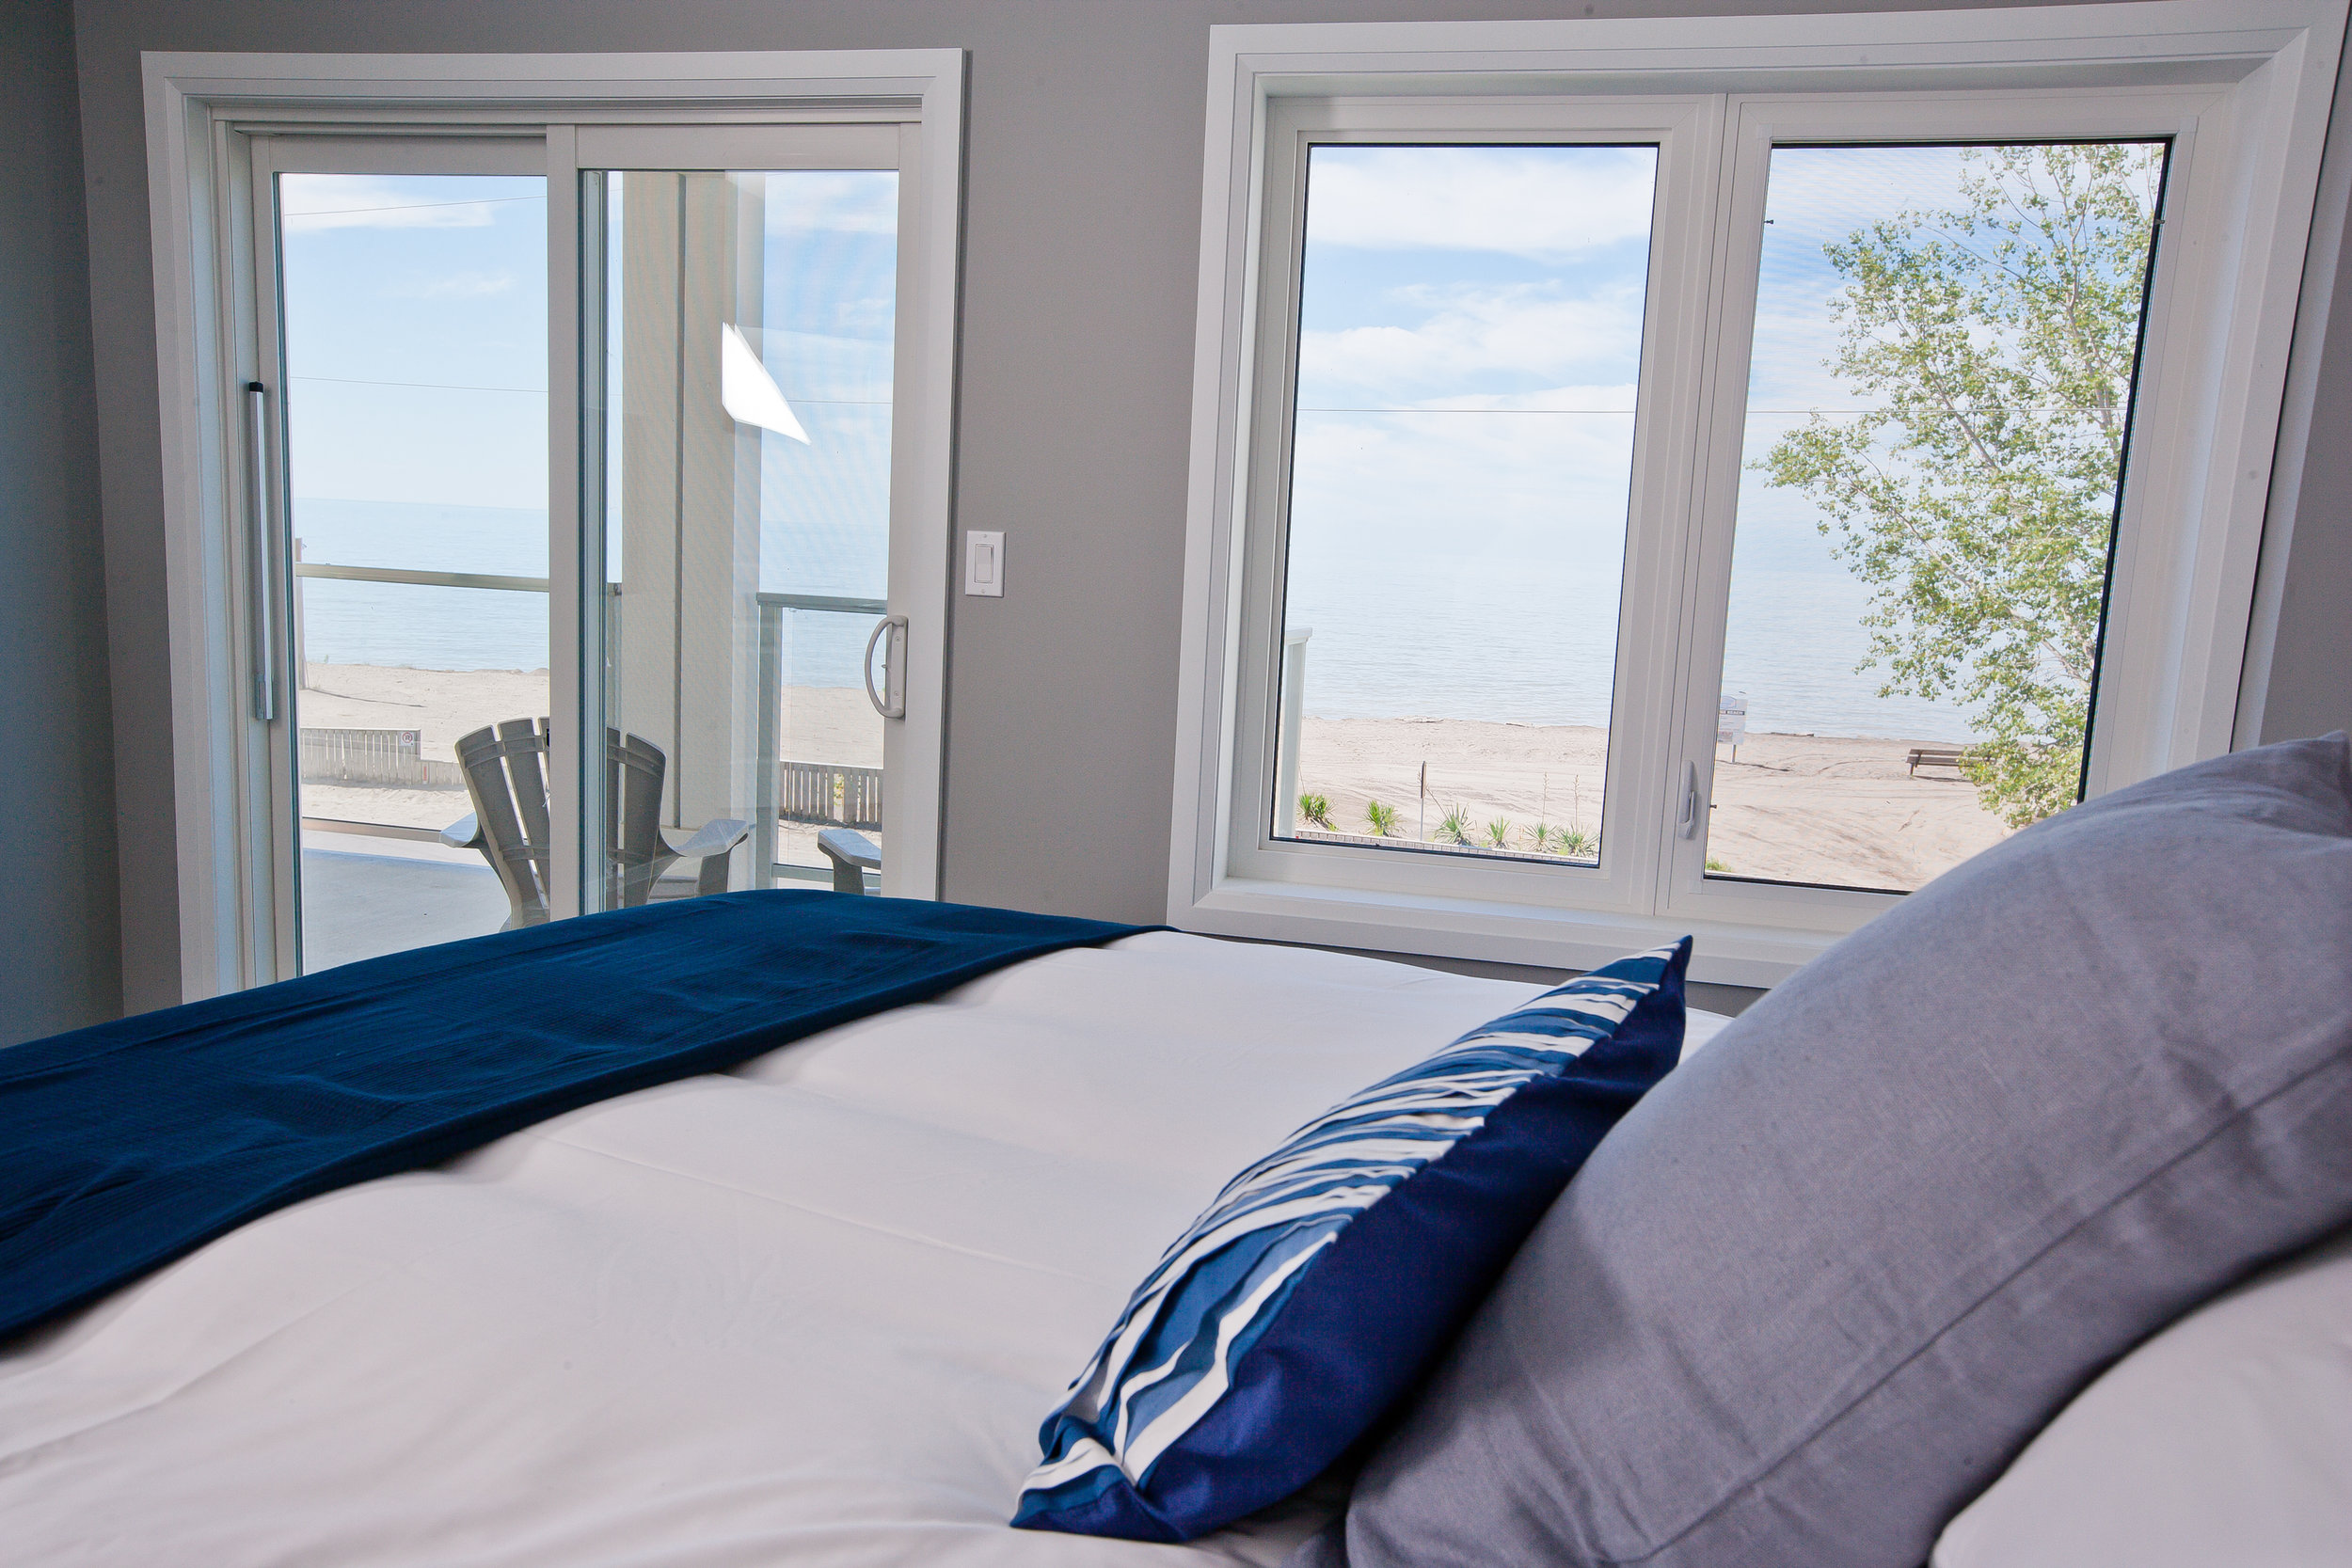 Luxurious masters include ensuites and a door to your private beach-side patio or balcony.